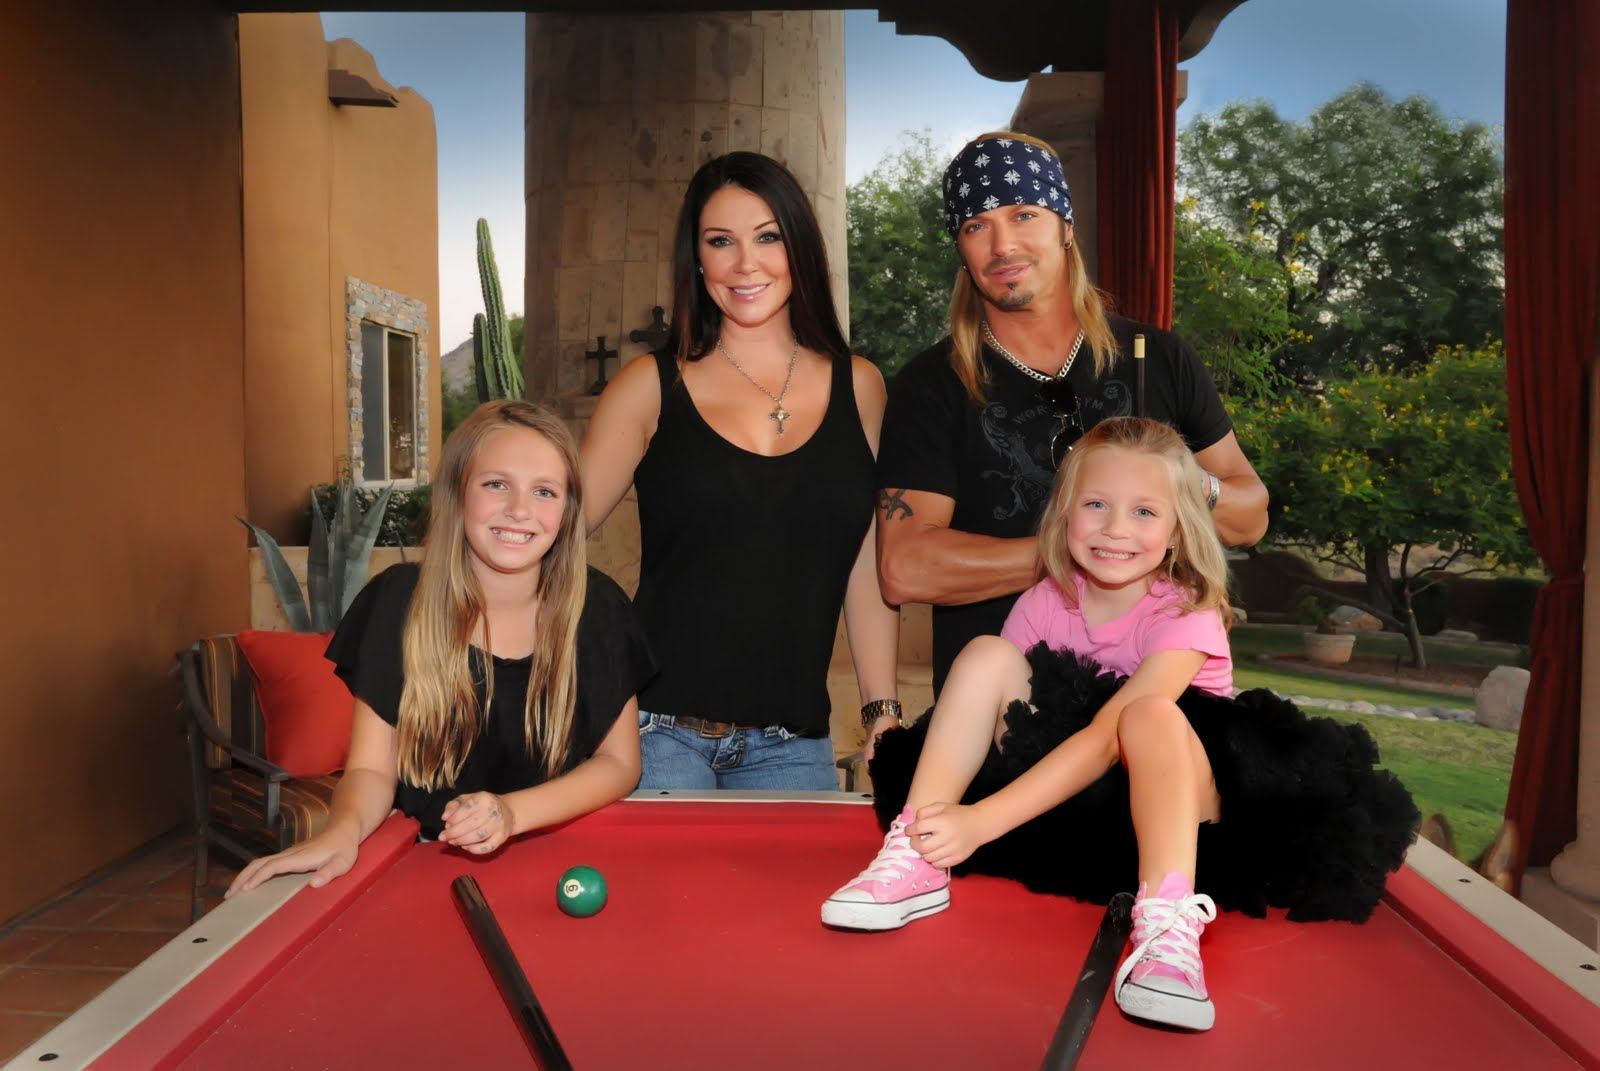 Rock of love with bret michaels nude girls-2479